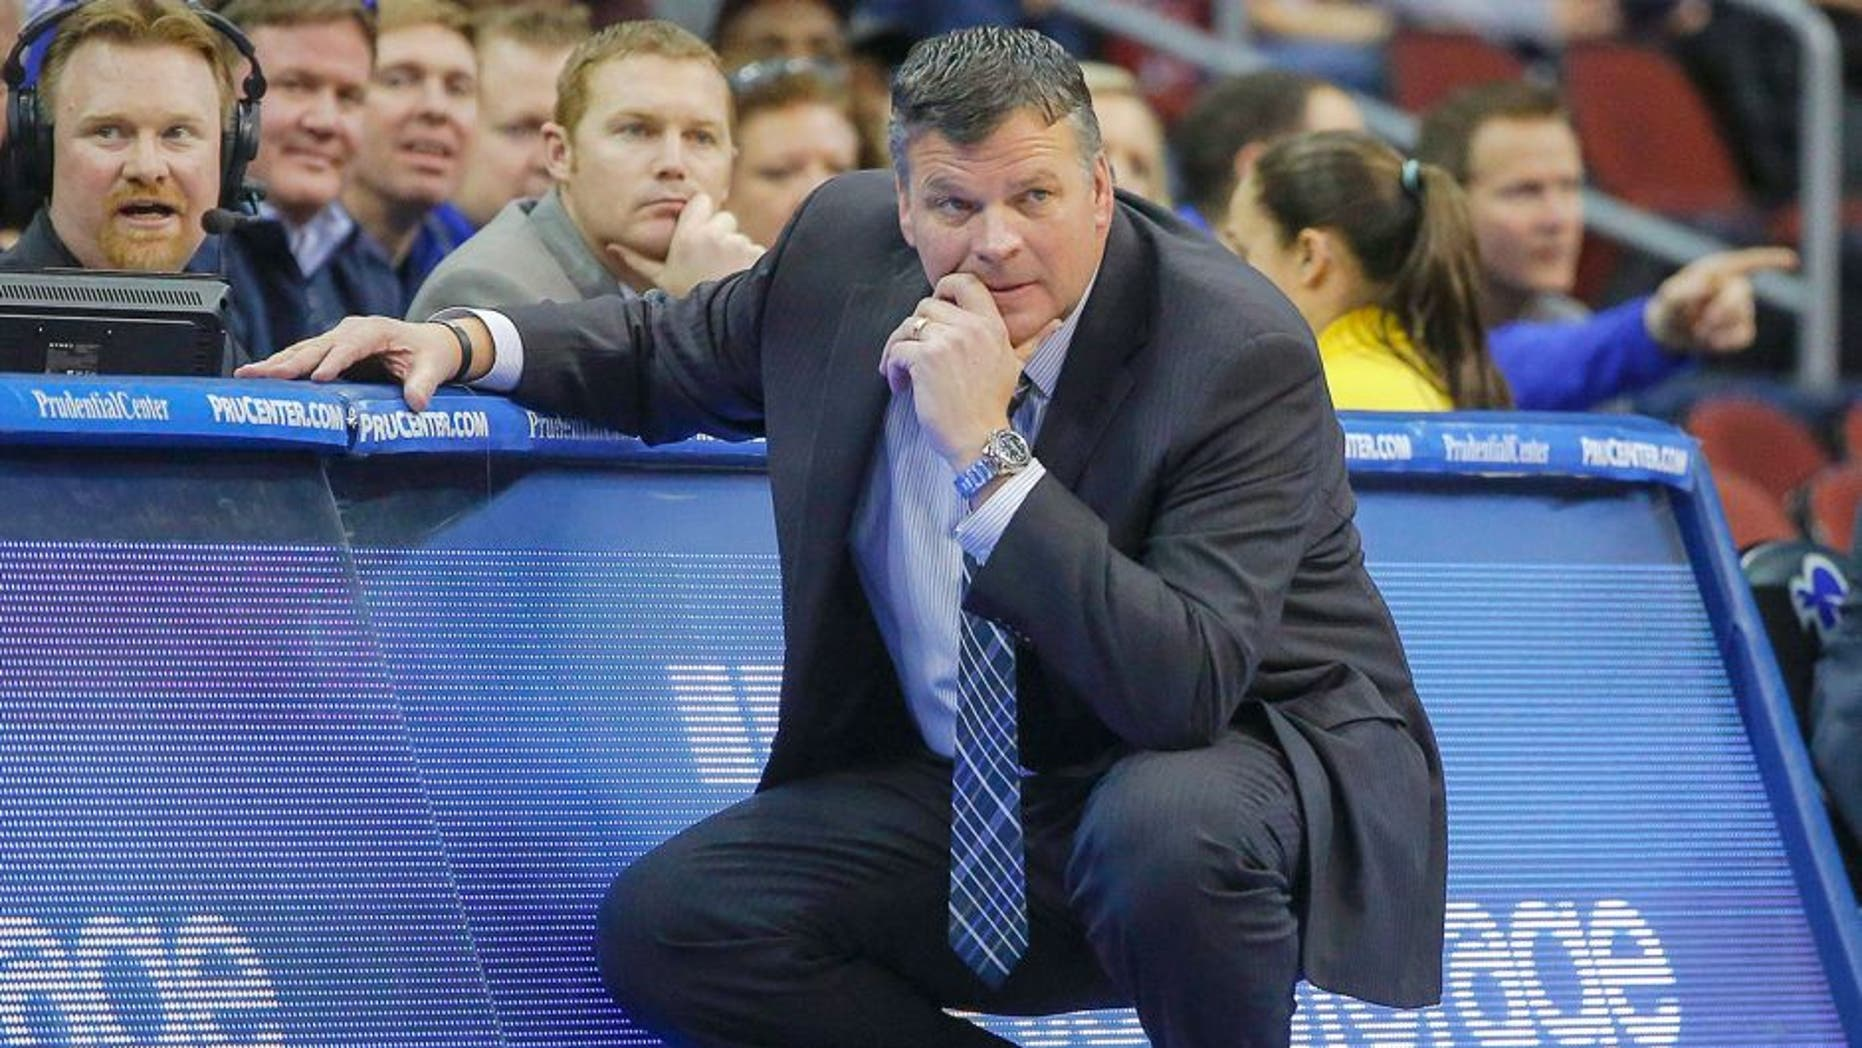 Feb 28, 2015; Newark, NJ, USA; Creighton Bluejays head coach Greg McDermott during the first half of game against the Seton Hall Pirates at the Prudential Center. Mandatory Credit: Jim O'Connor-USA TODAY Sports